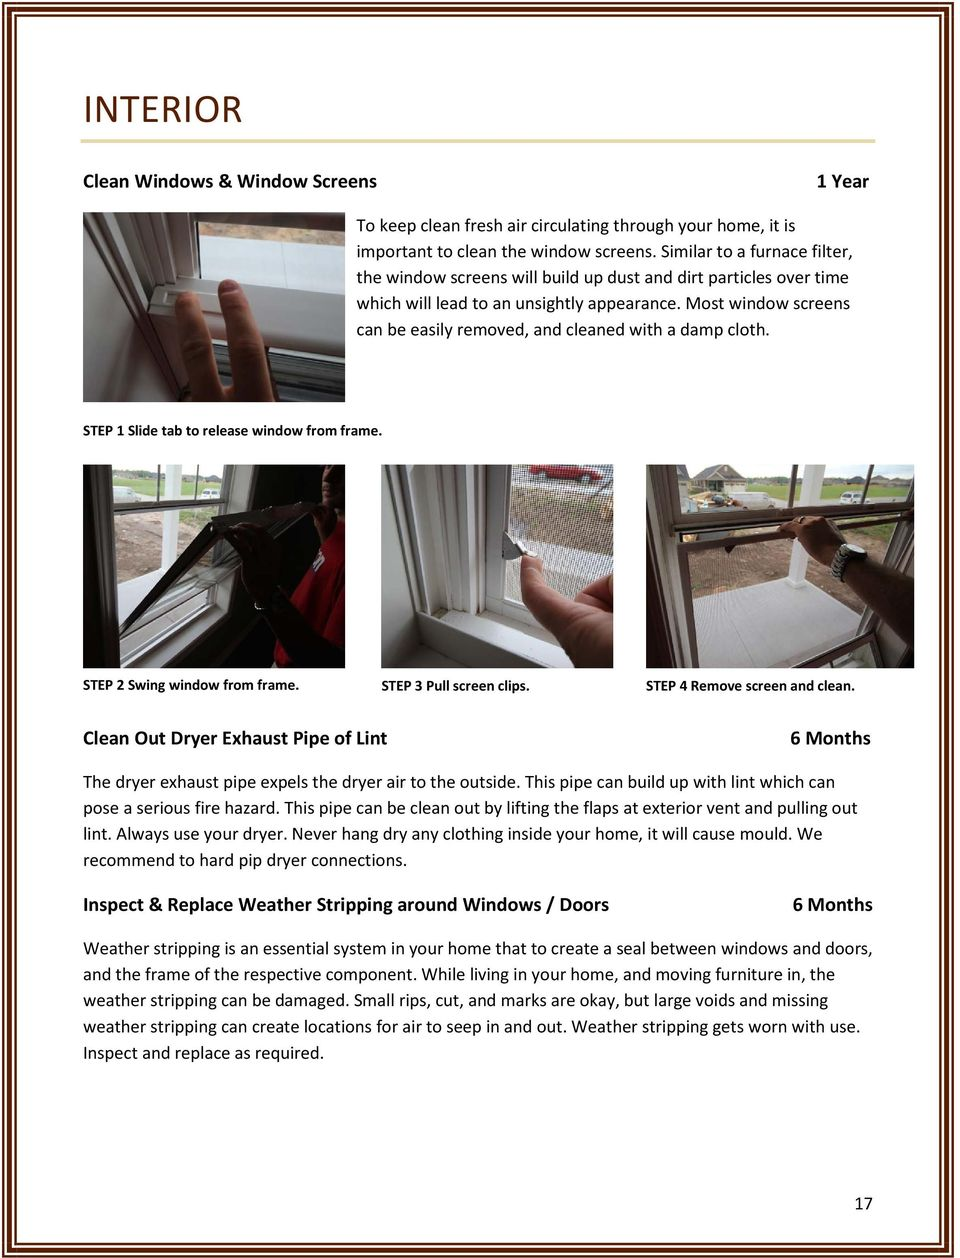 Most window screens can be easily removed, and cleaned with a damp cloth. STEP 1 Slide tab to release window from frame. STEP 2 Swing window from frame. STEP 3 Pull screen clips.